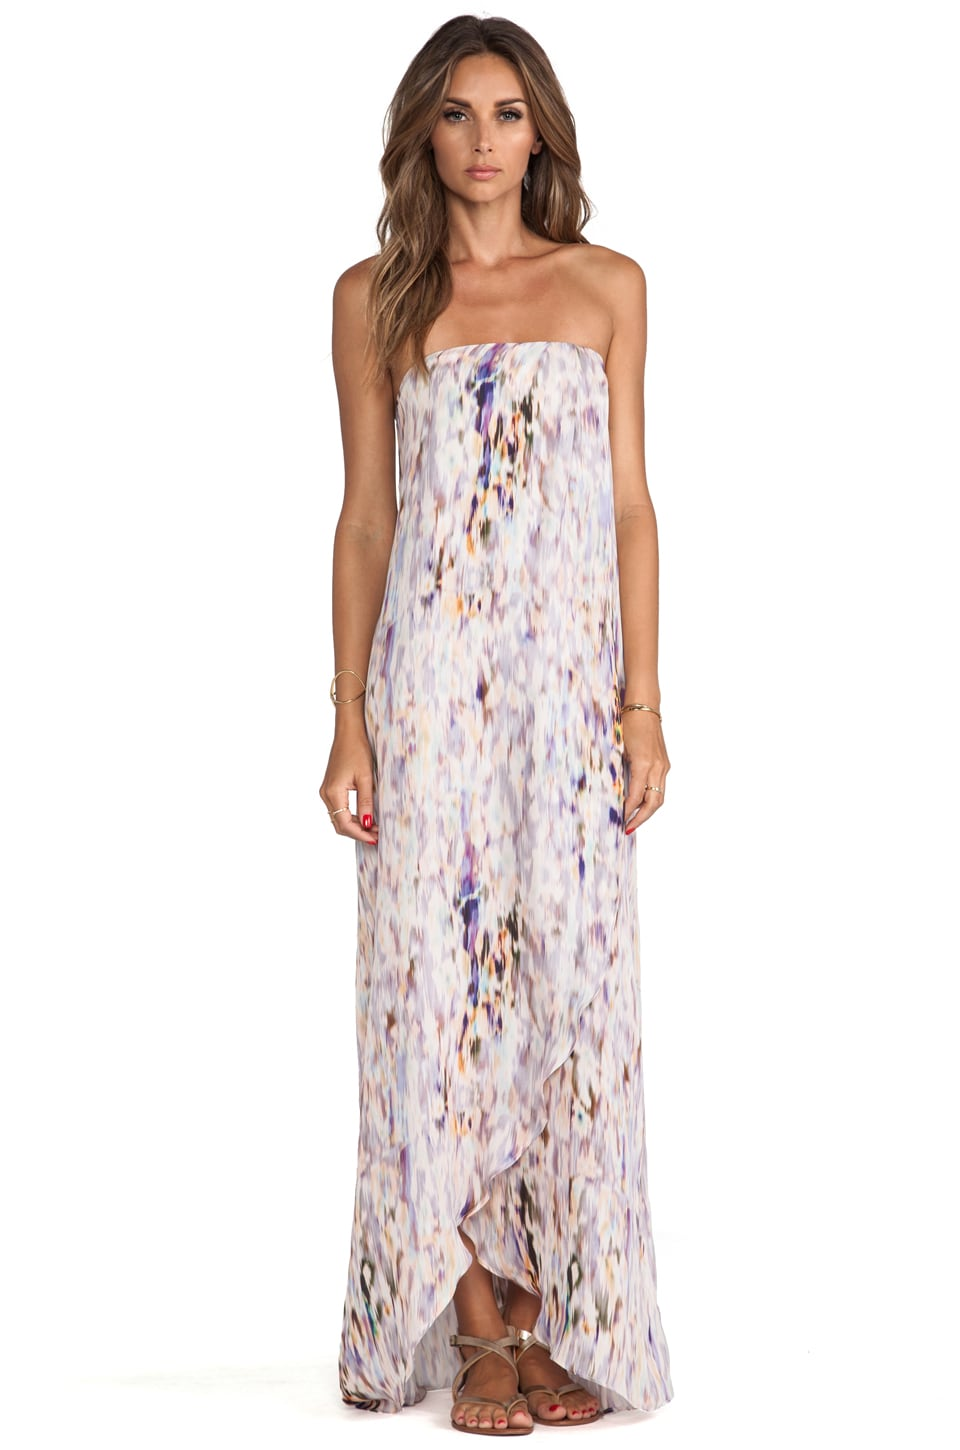 Helena Quinn Strapless Asymmetric Hem Maxi Dress in Watercolor